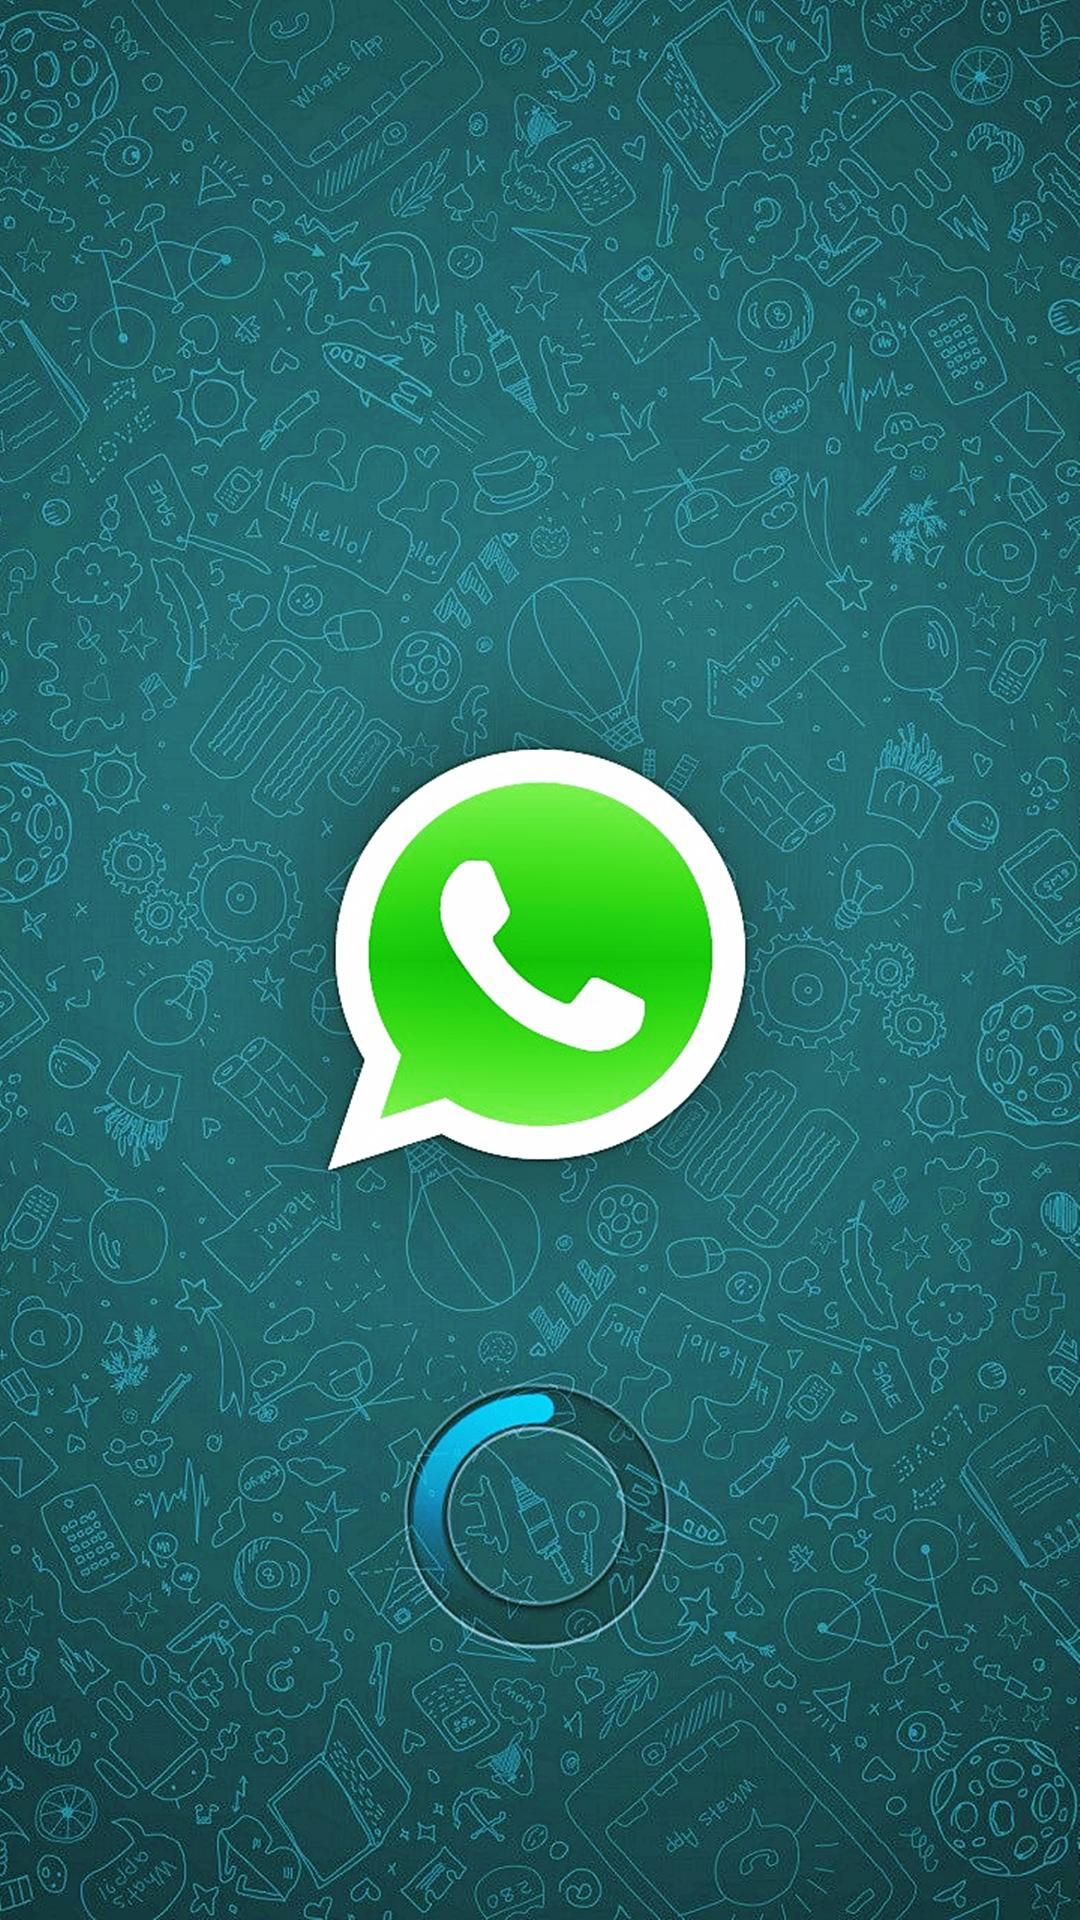 Whatsapp Background Wallpapers Posted By Samantha Simpson